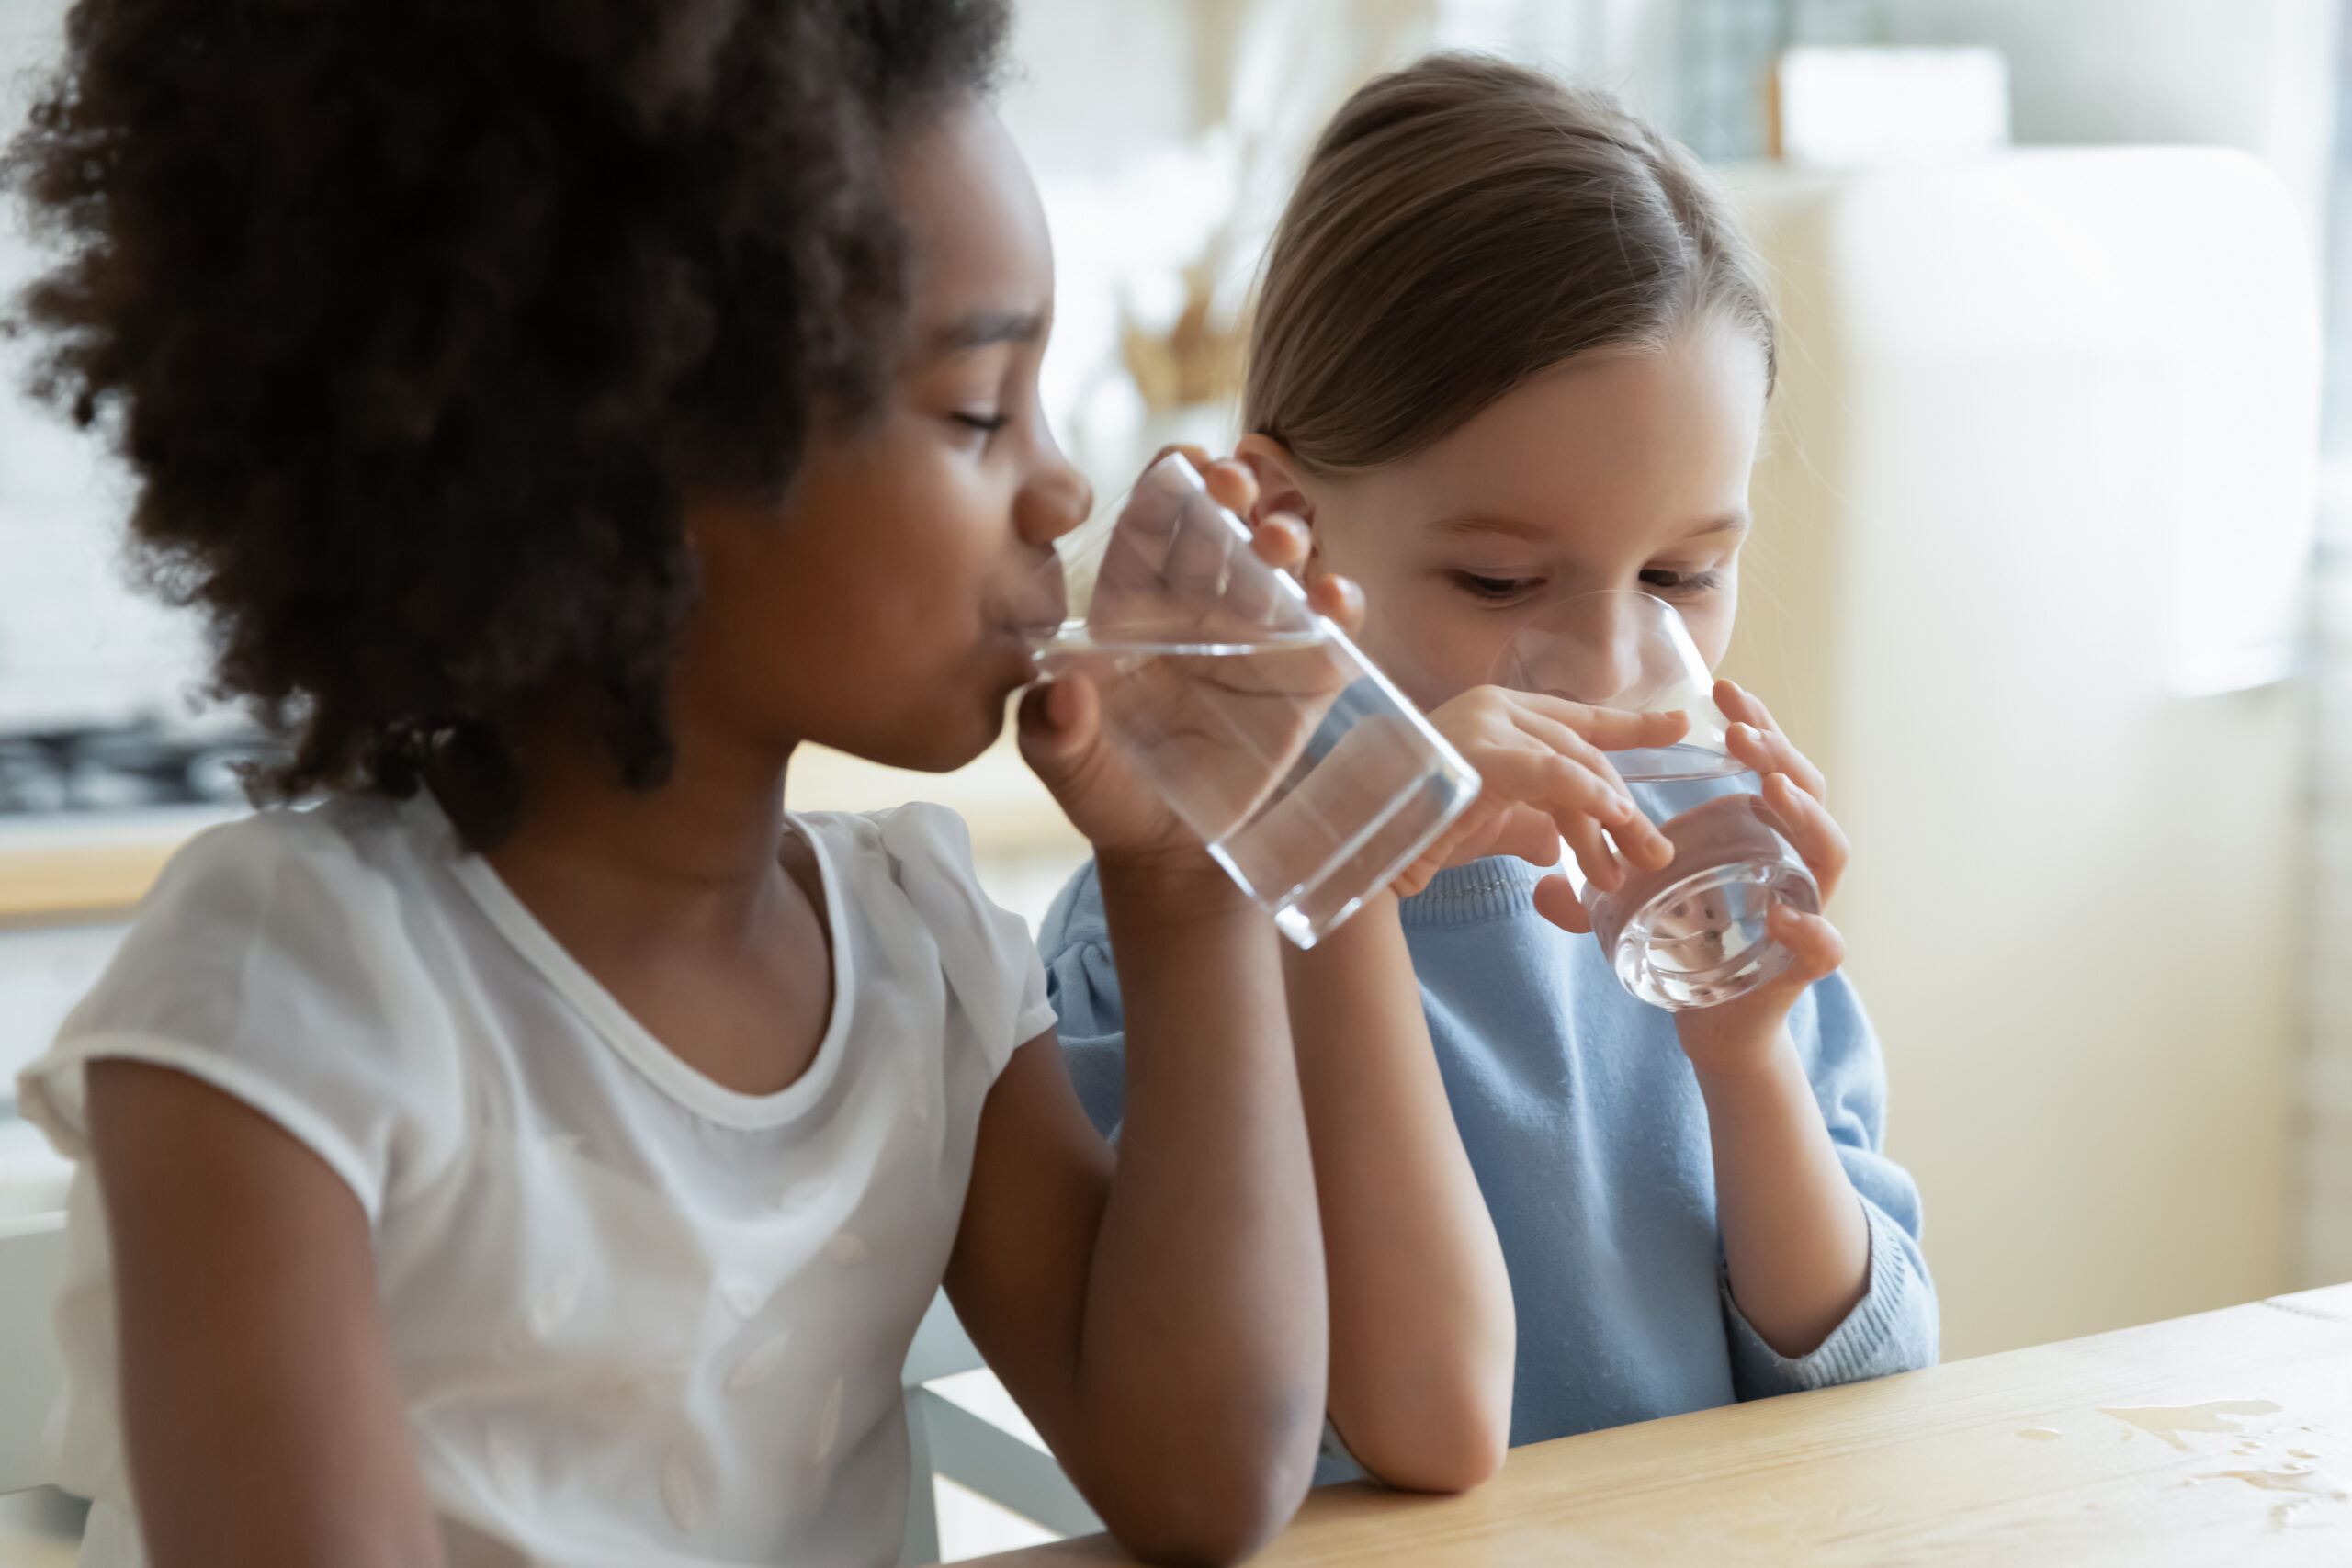 Two girls drink glasses of water